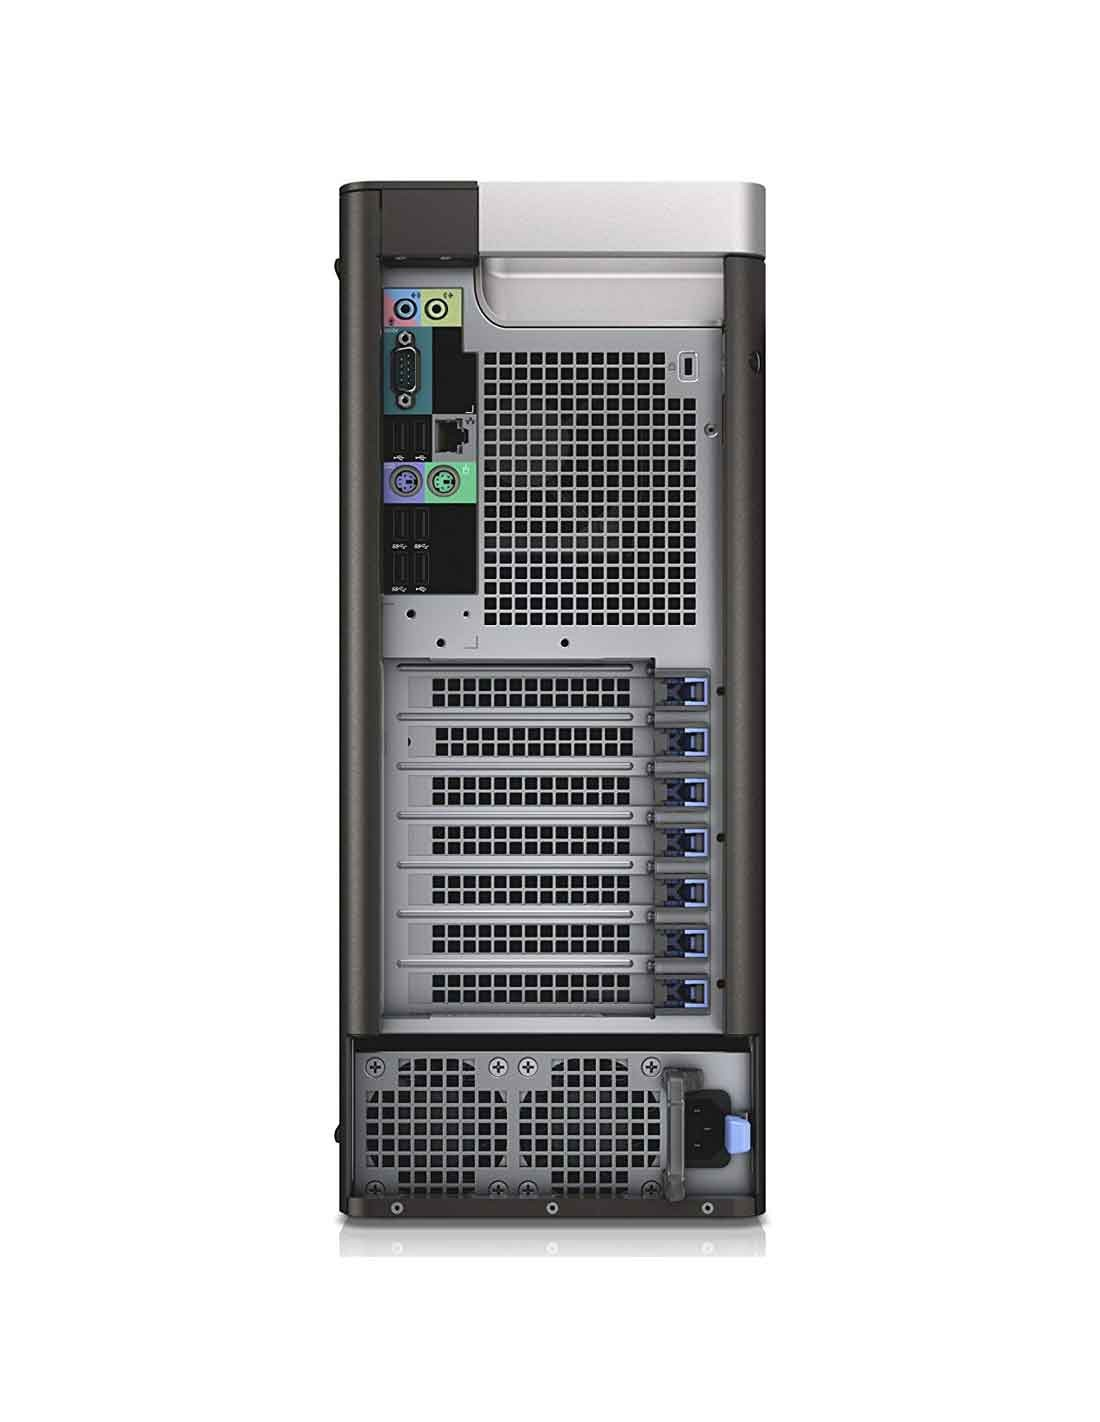 Dell Precision T5810 Tower E5-1650 v4 images and photos in Dubai online store